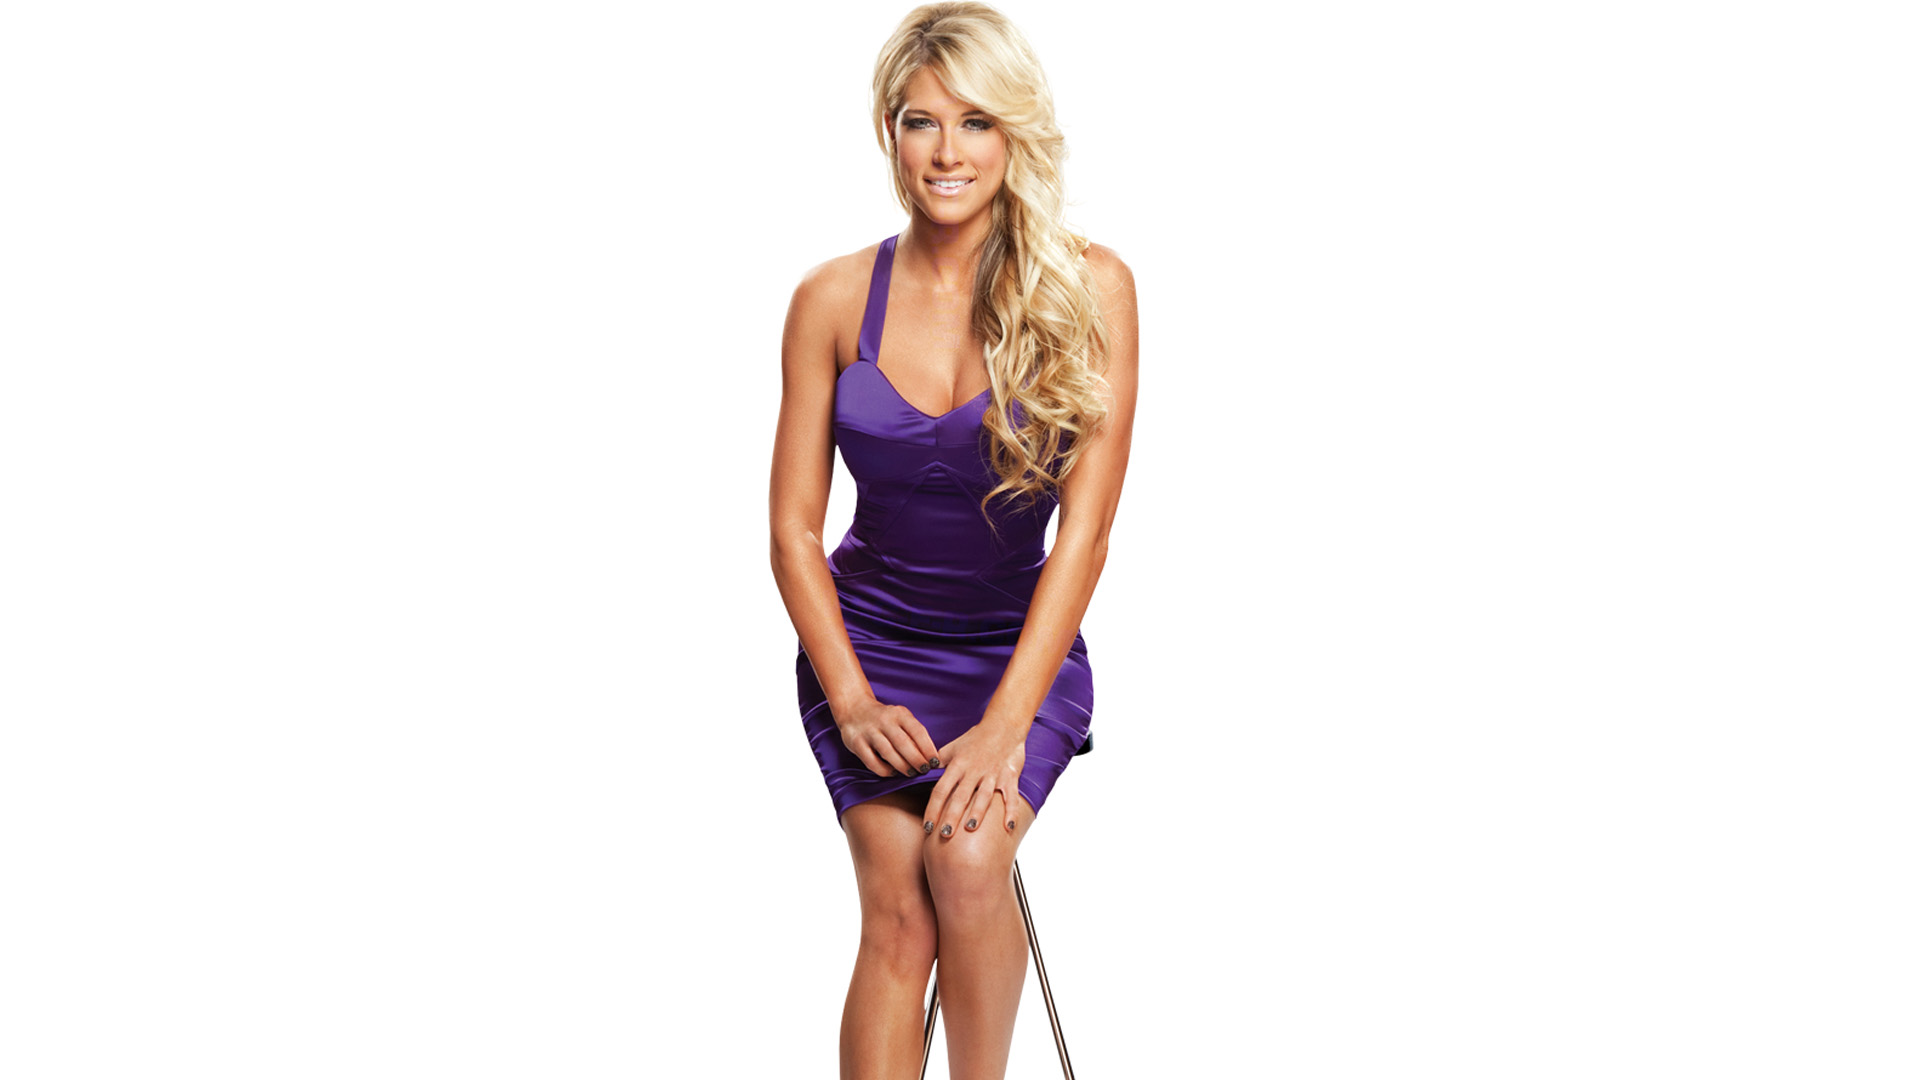 Kelly Kelly images keLLy wallpaper photos (30163517)